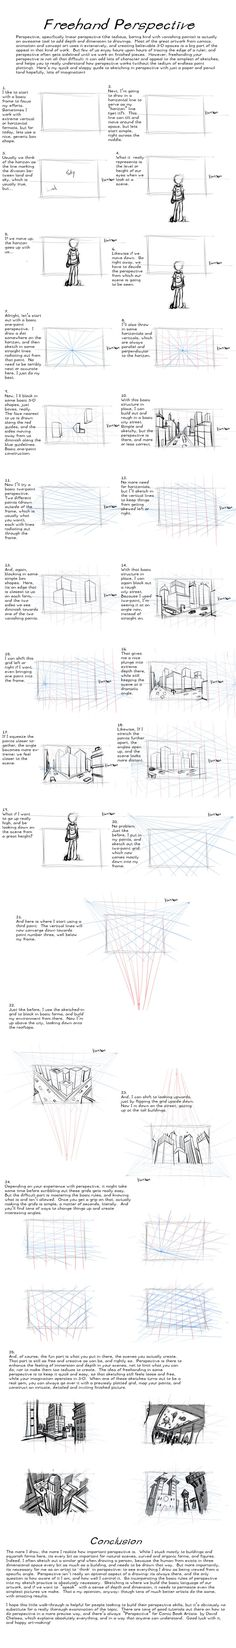 Freehand Perspective Drawing Tutorial by AdamMasterman.deviantart.com on @deviantART